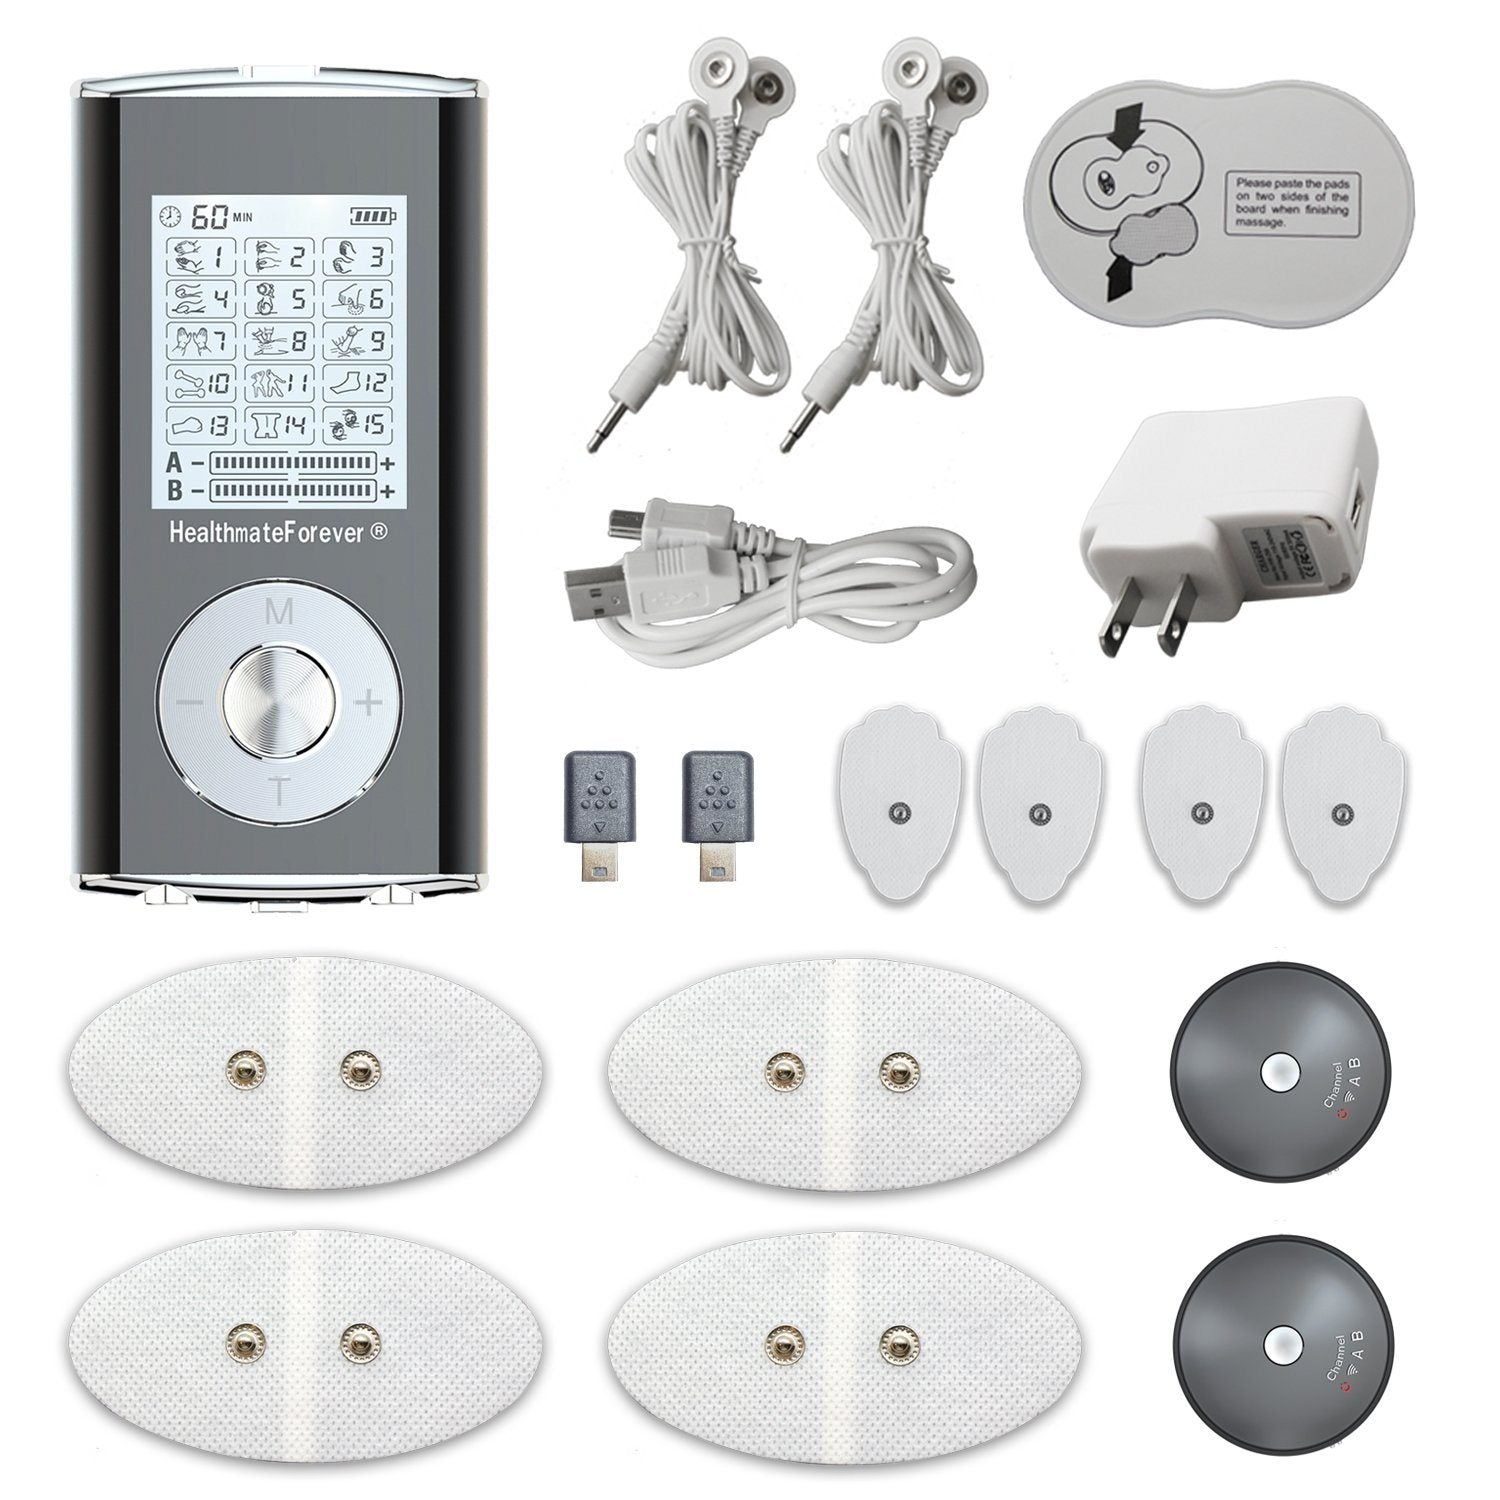 HM15GAB HealthmateForever Wireless TENS unit & Muscle Stimulator